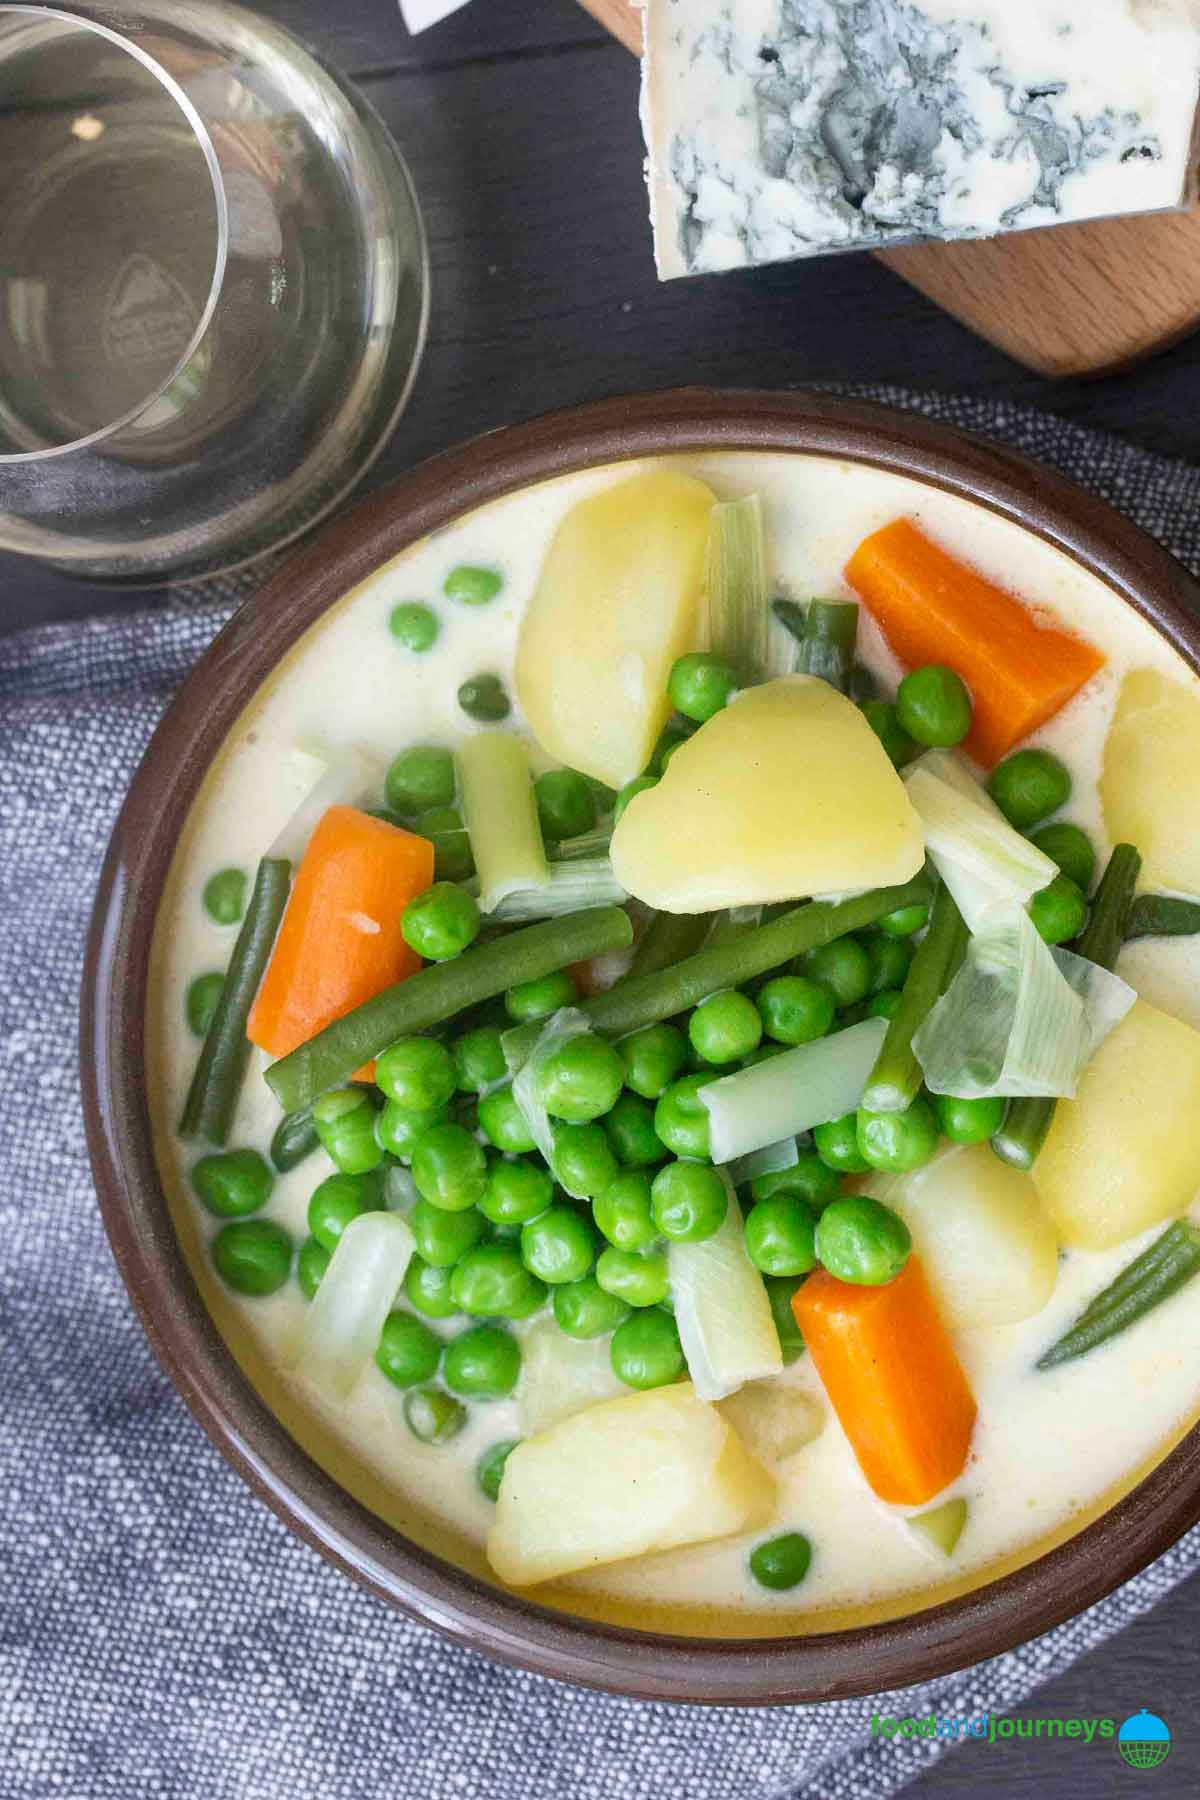 A bowl of Summer Vegetable Soup, served with some blue cheese, and a glass of white wine.